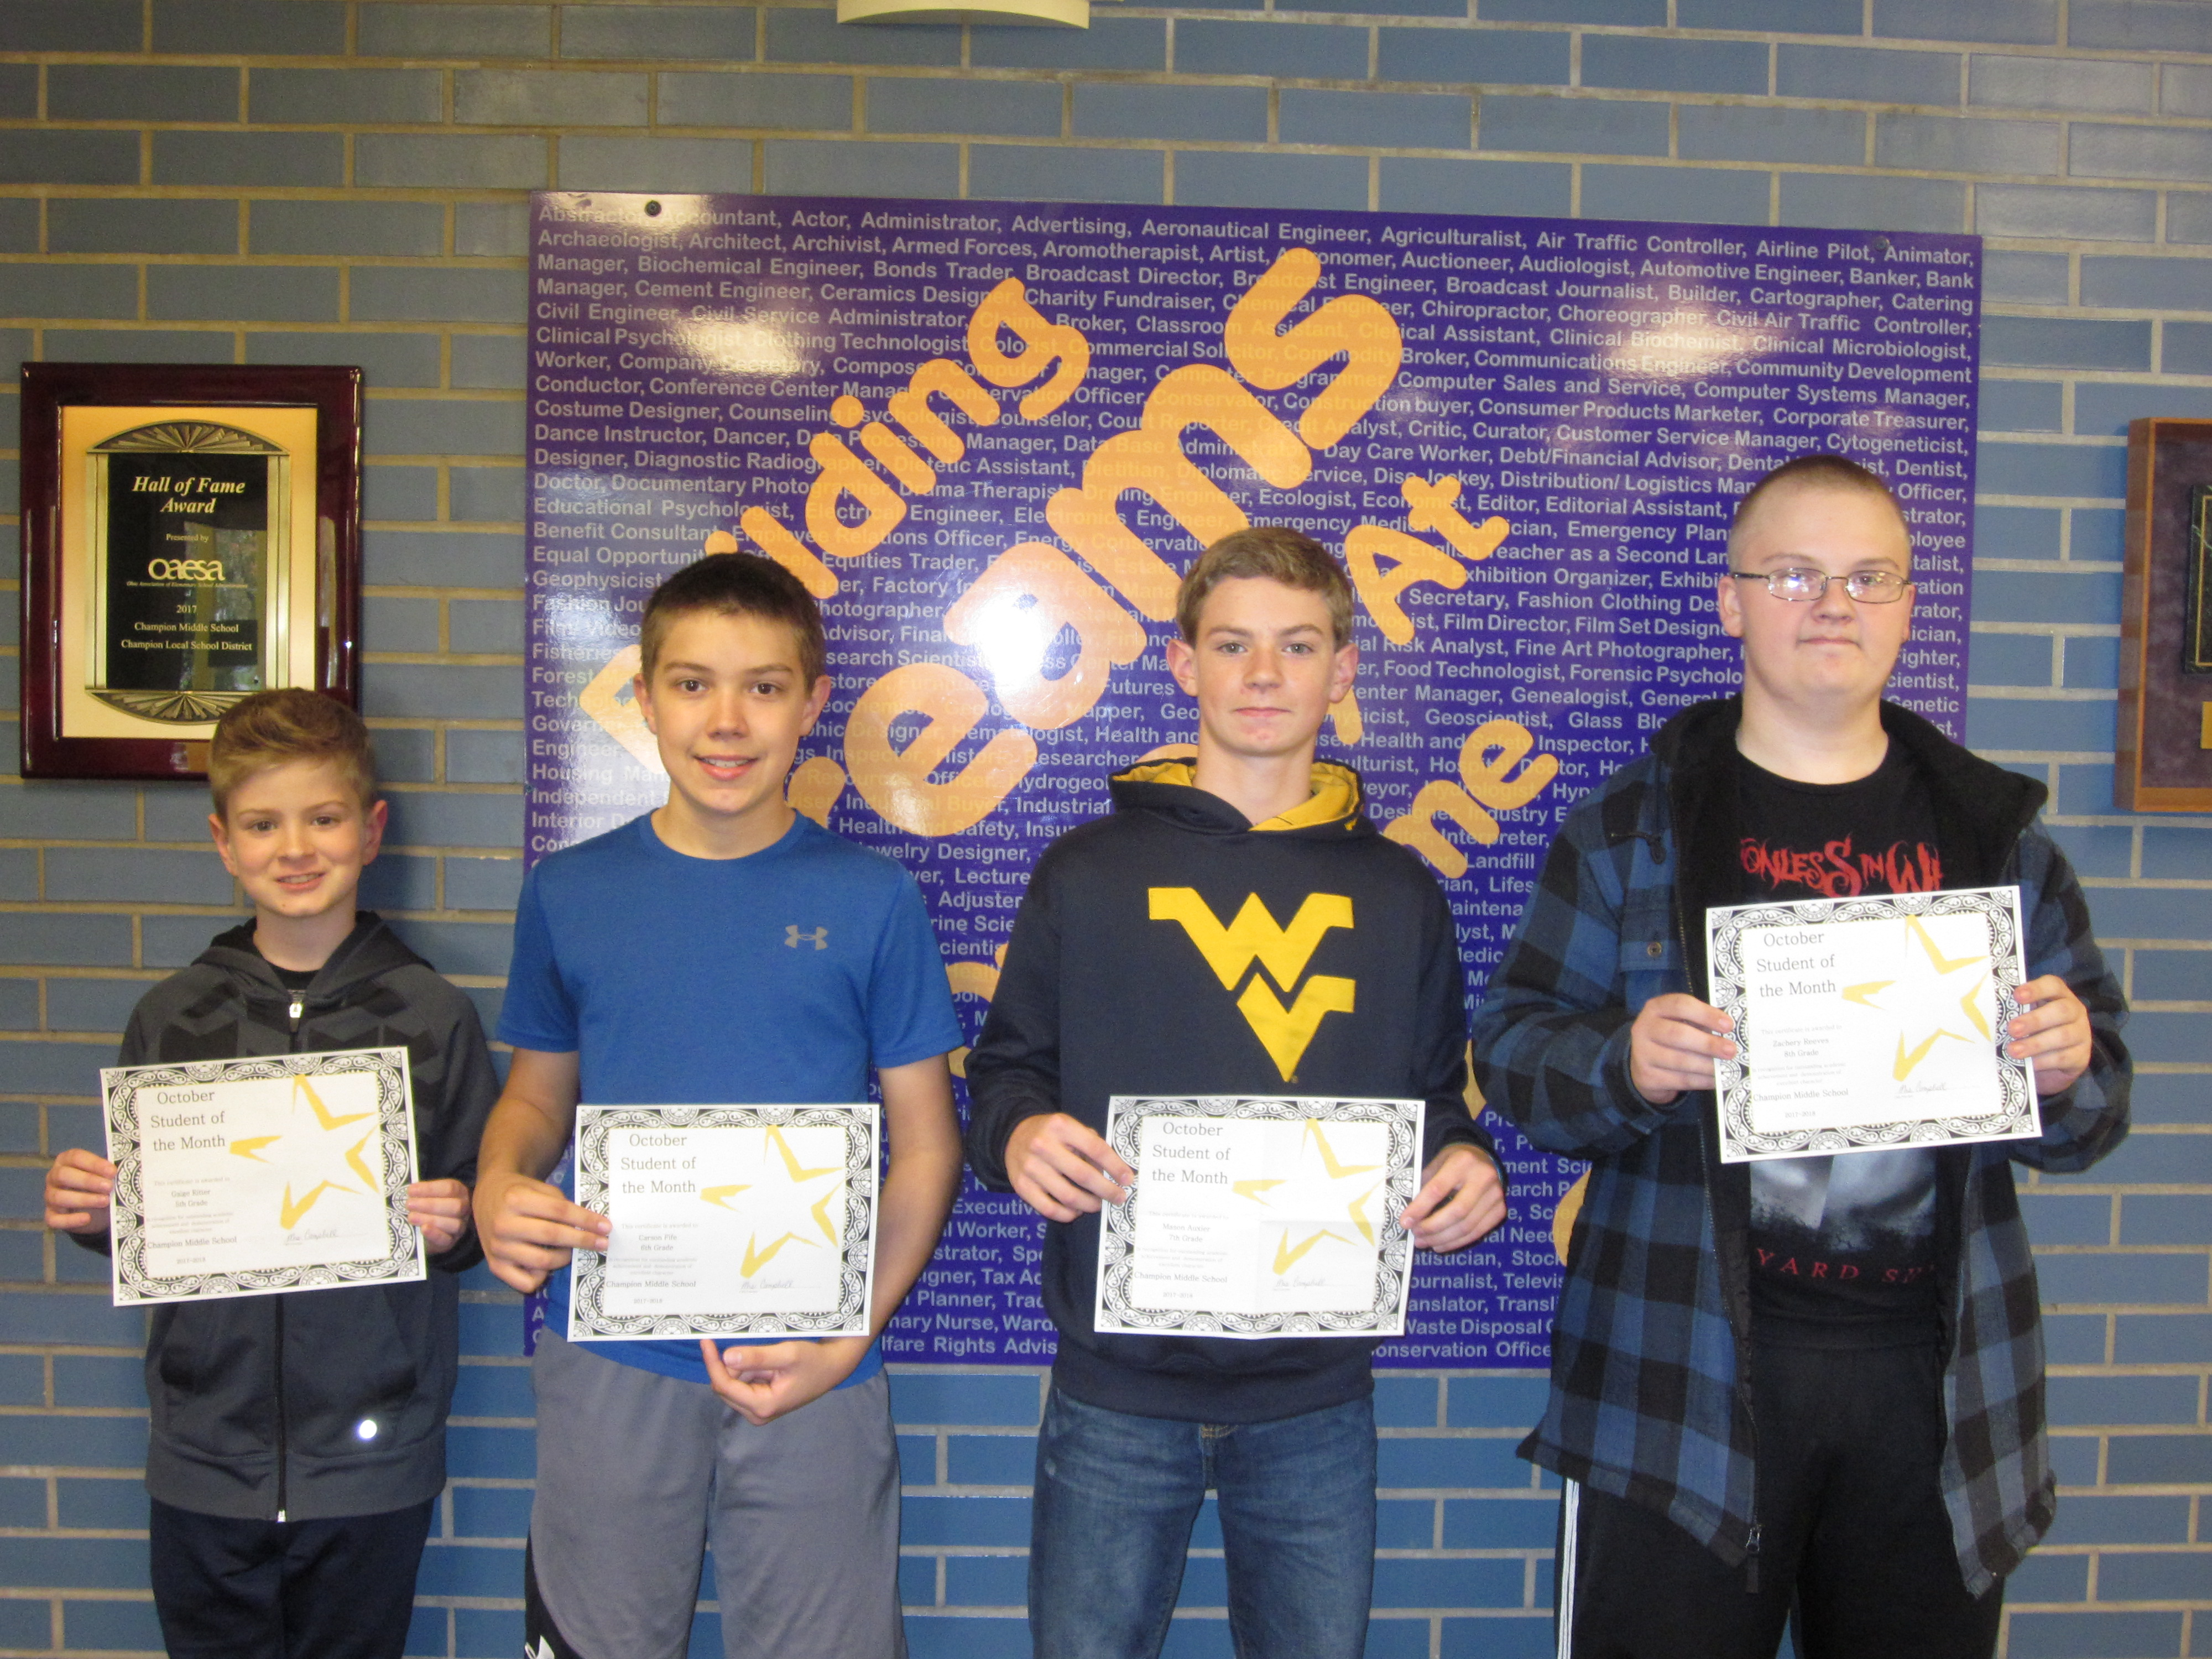 Gaige Ritter-5th grade, Carson Fife-6th grade, Mason Auxier-7th grade, Zachery Reeves-8th grade